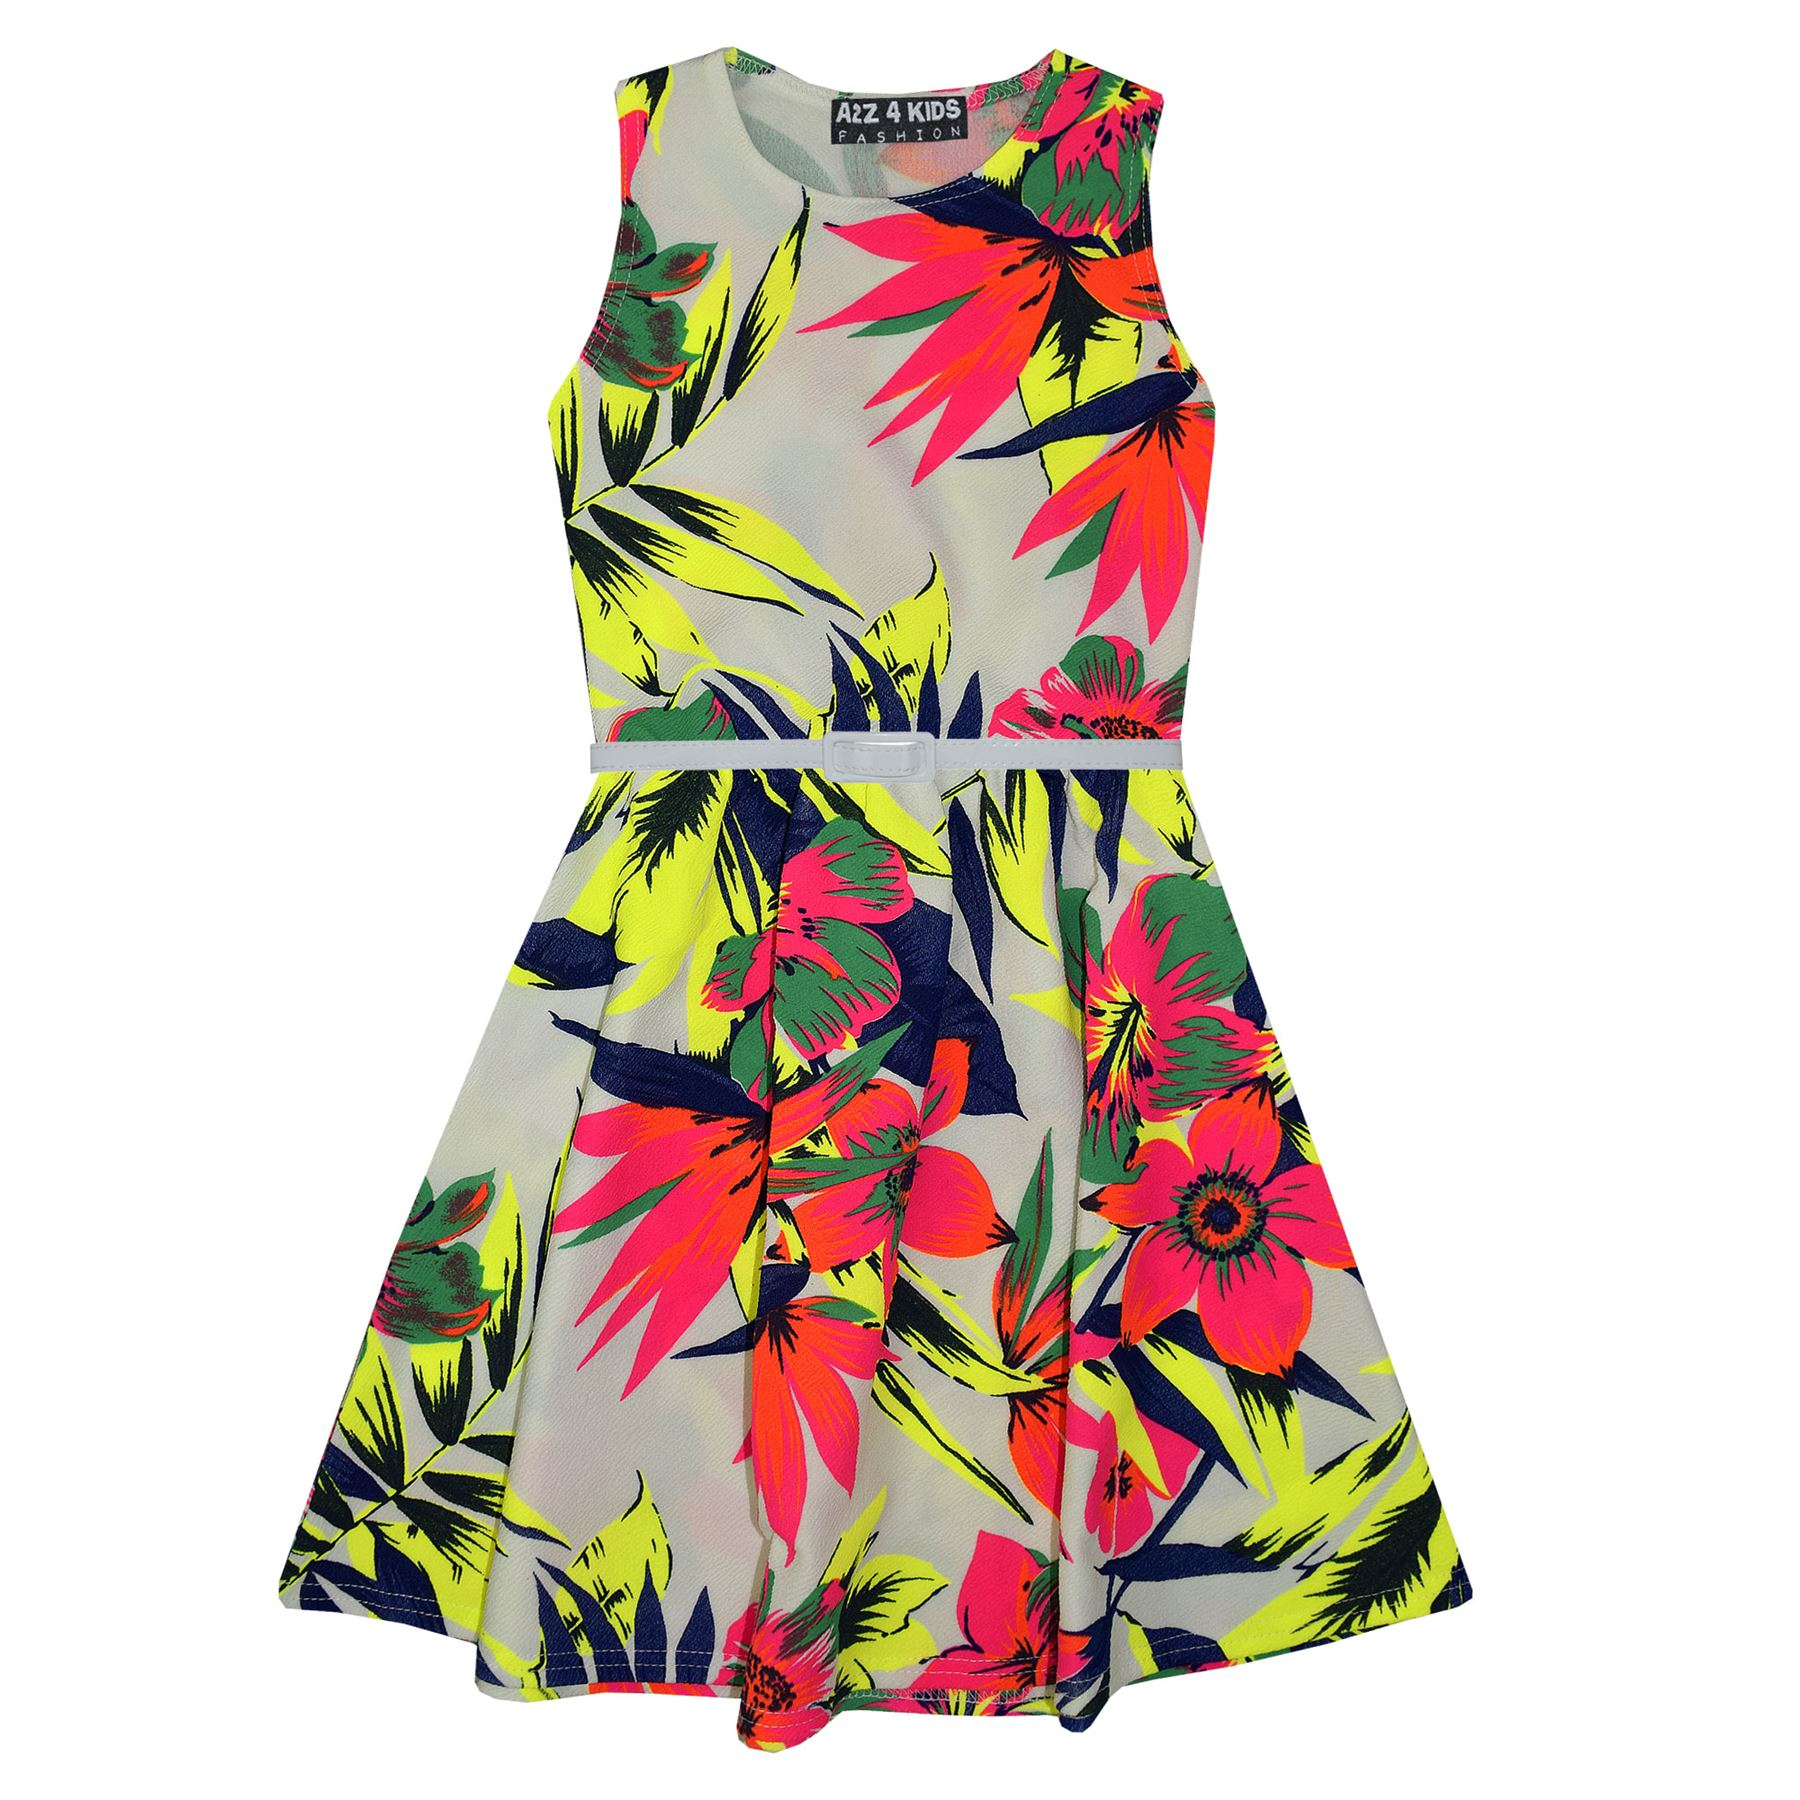 Filles-robe-patineuse-enfants-fluo-tropical-print-summer-party-robes-age-7-13-ans